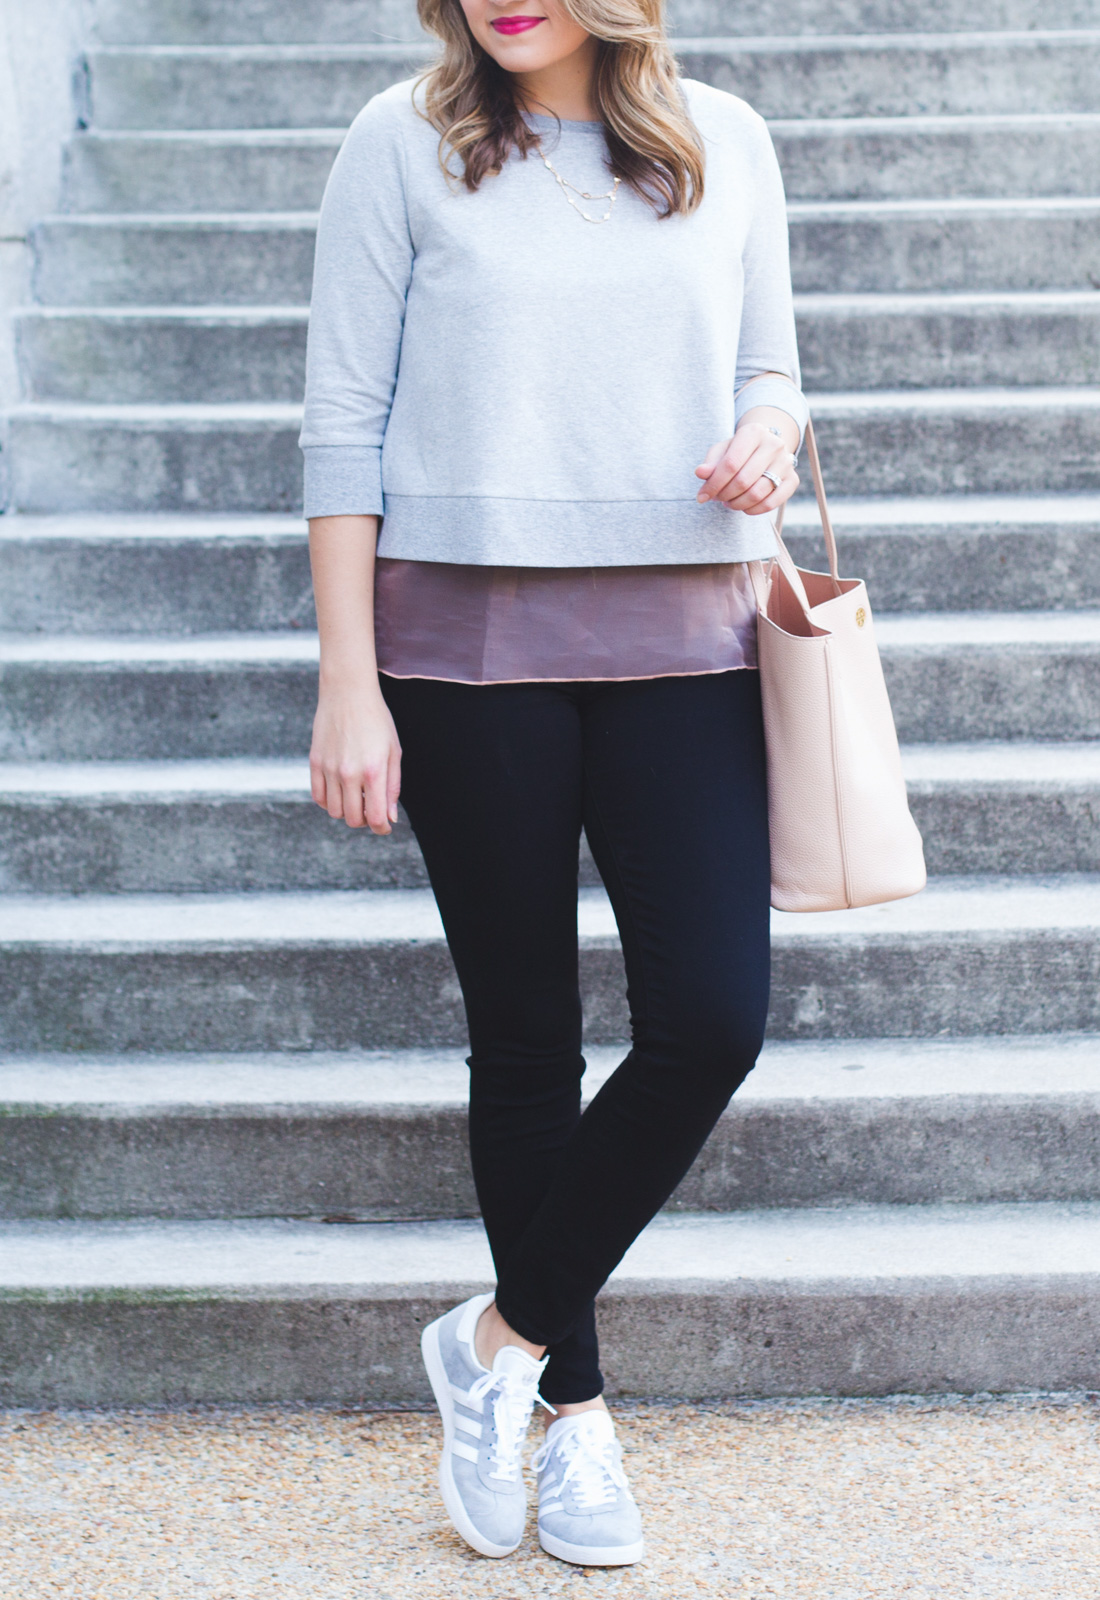 spring outfit with sneakers - adidas sneakers outfit. Click through for more casual Spring outfits or to shop this look! www.bylaurenm.com